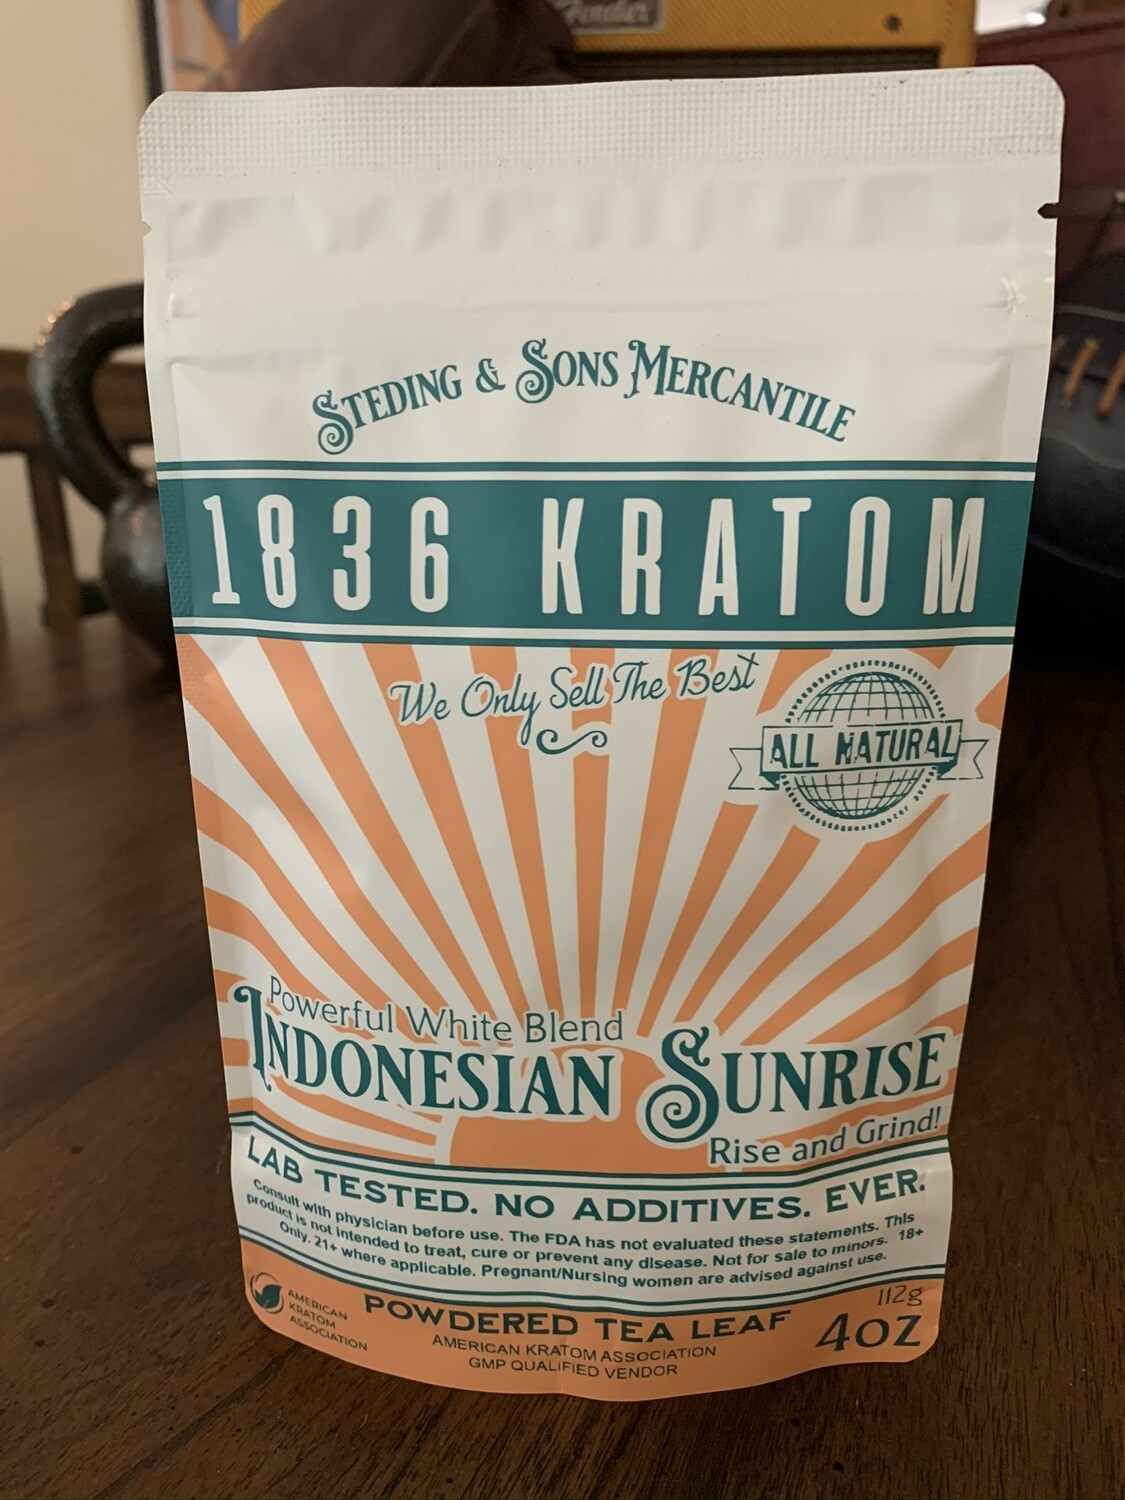 Indonesian Sunrise - Powdered Leaf - 5 Sizes!